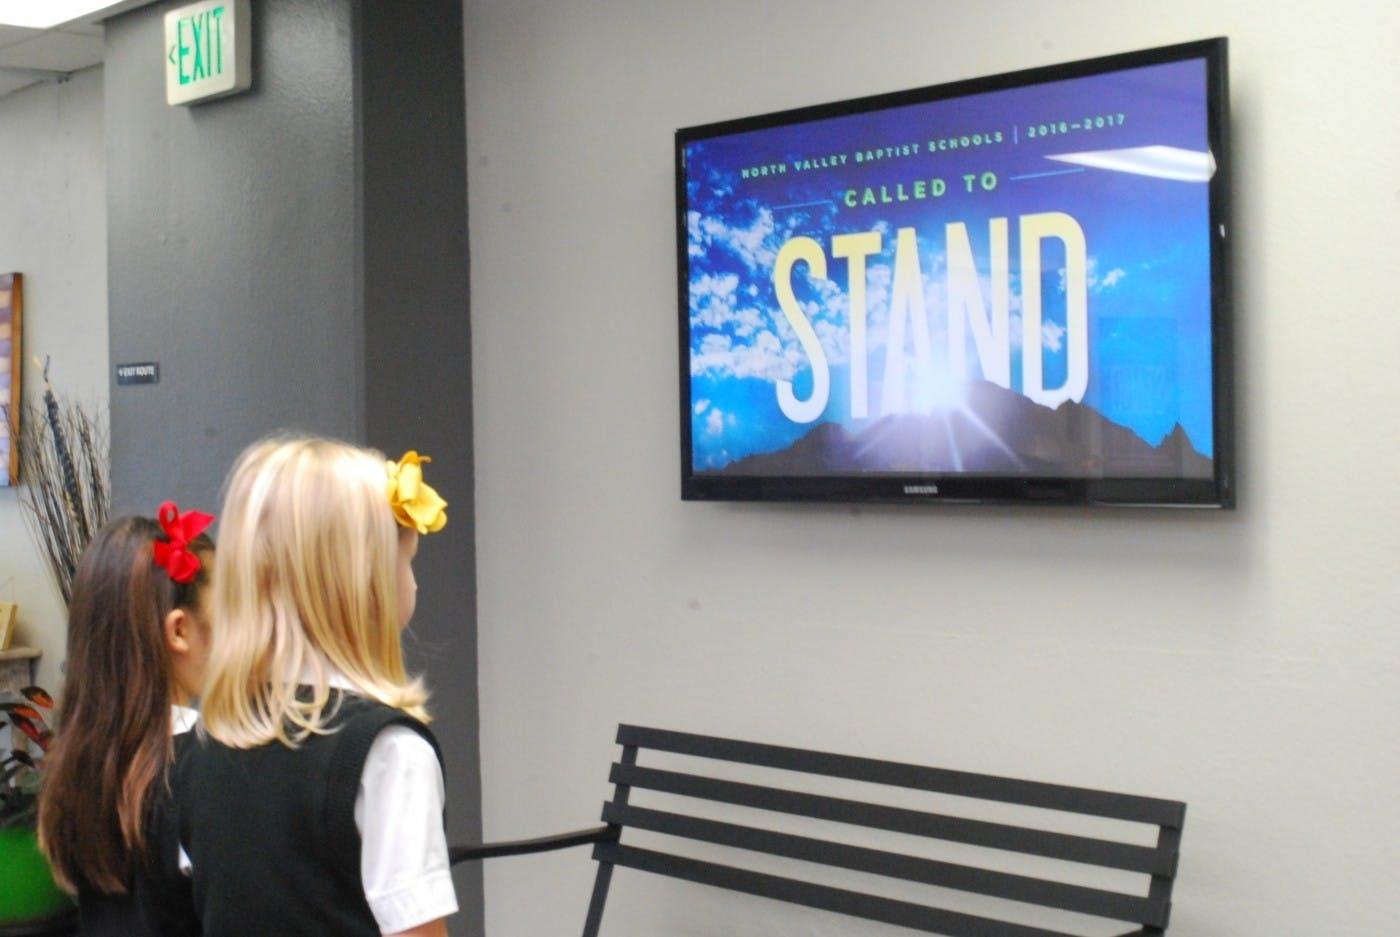 North Valley Baptist Schools Use Digital Signage to Inform and Educate the Student Body